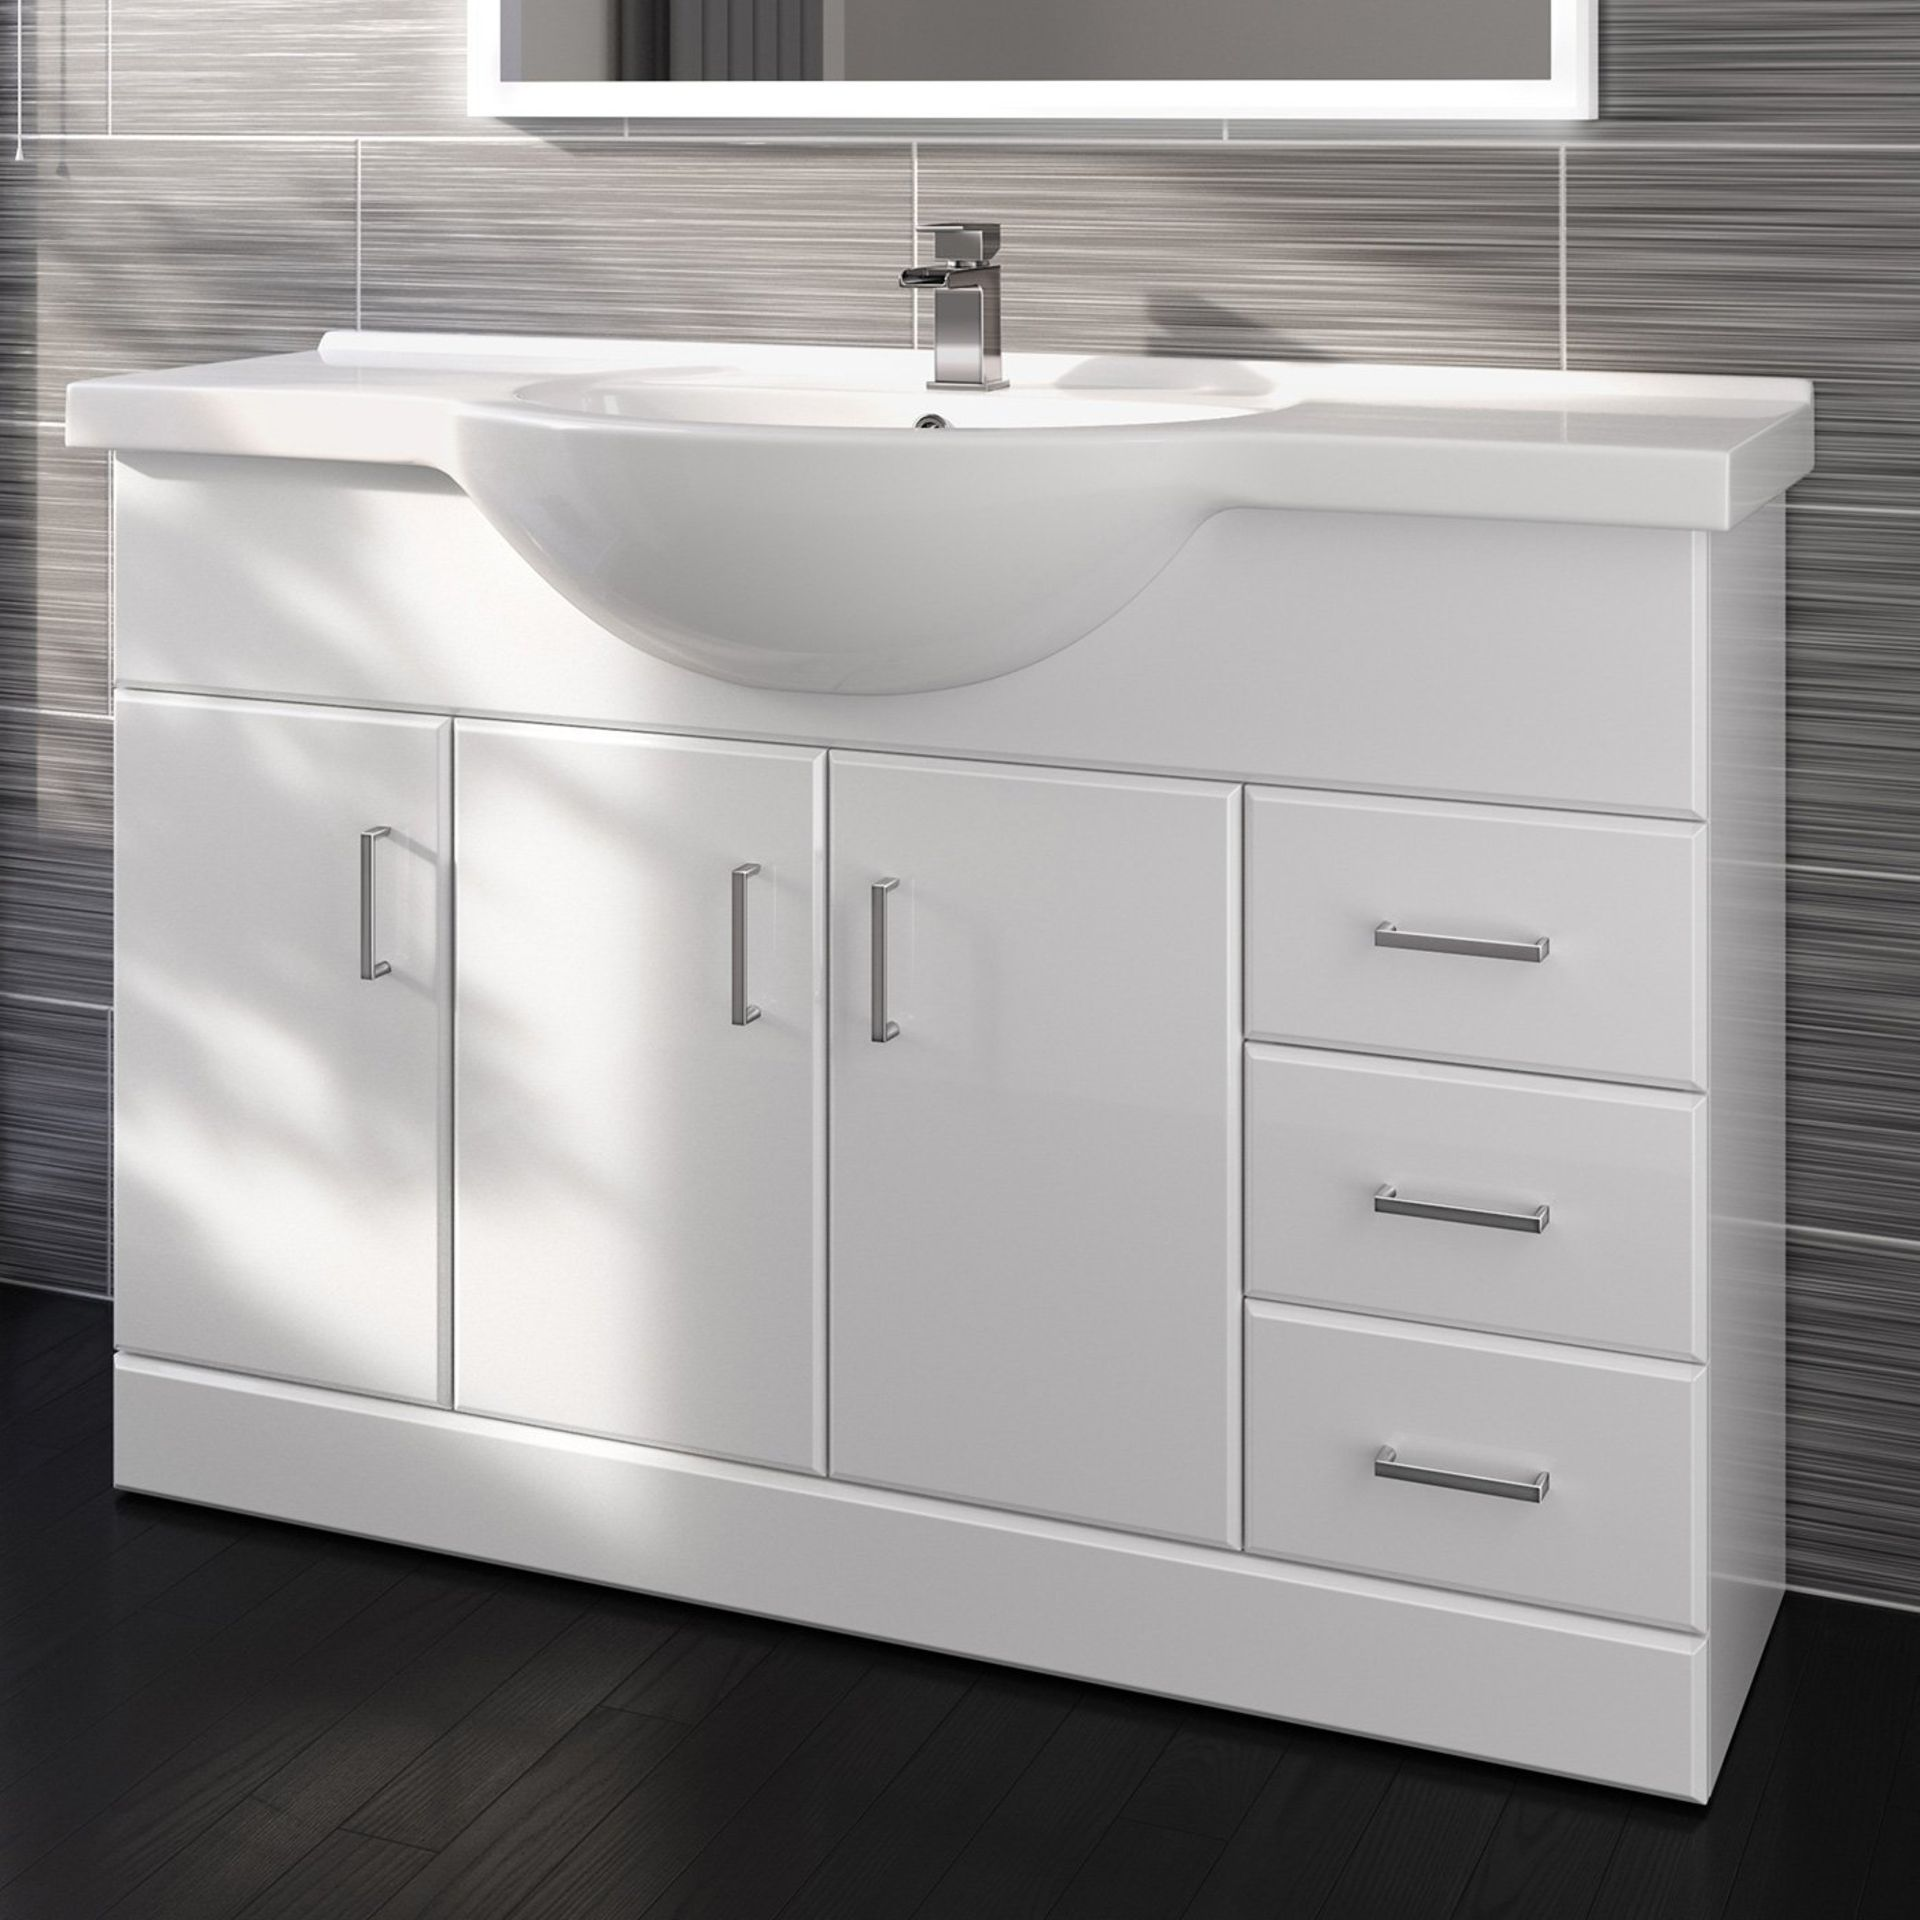 Lot 2 - (ED256) 1200mm White Gloss Basin Vanity Unit Sink Cabinet Bathroom. Comes complete with basin. ...